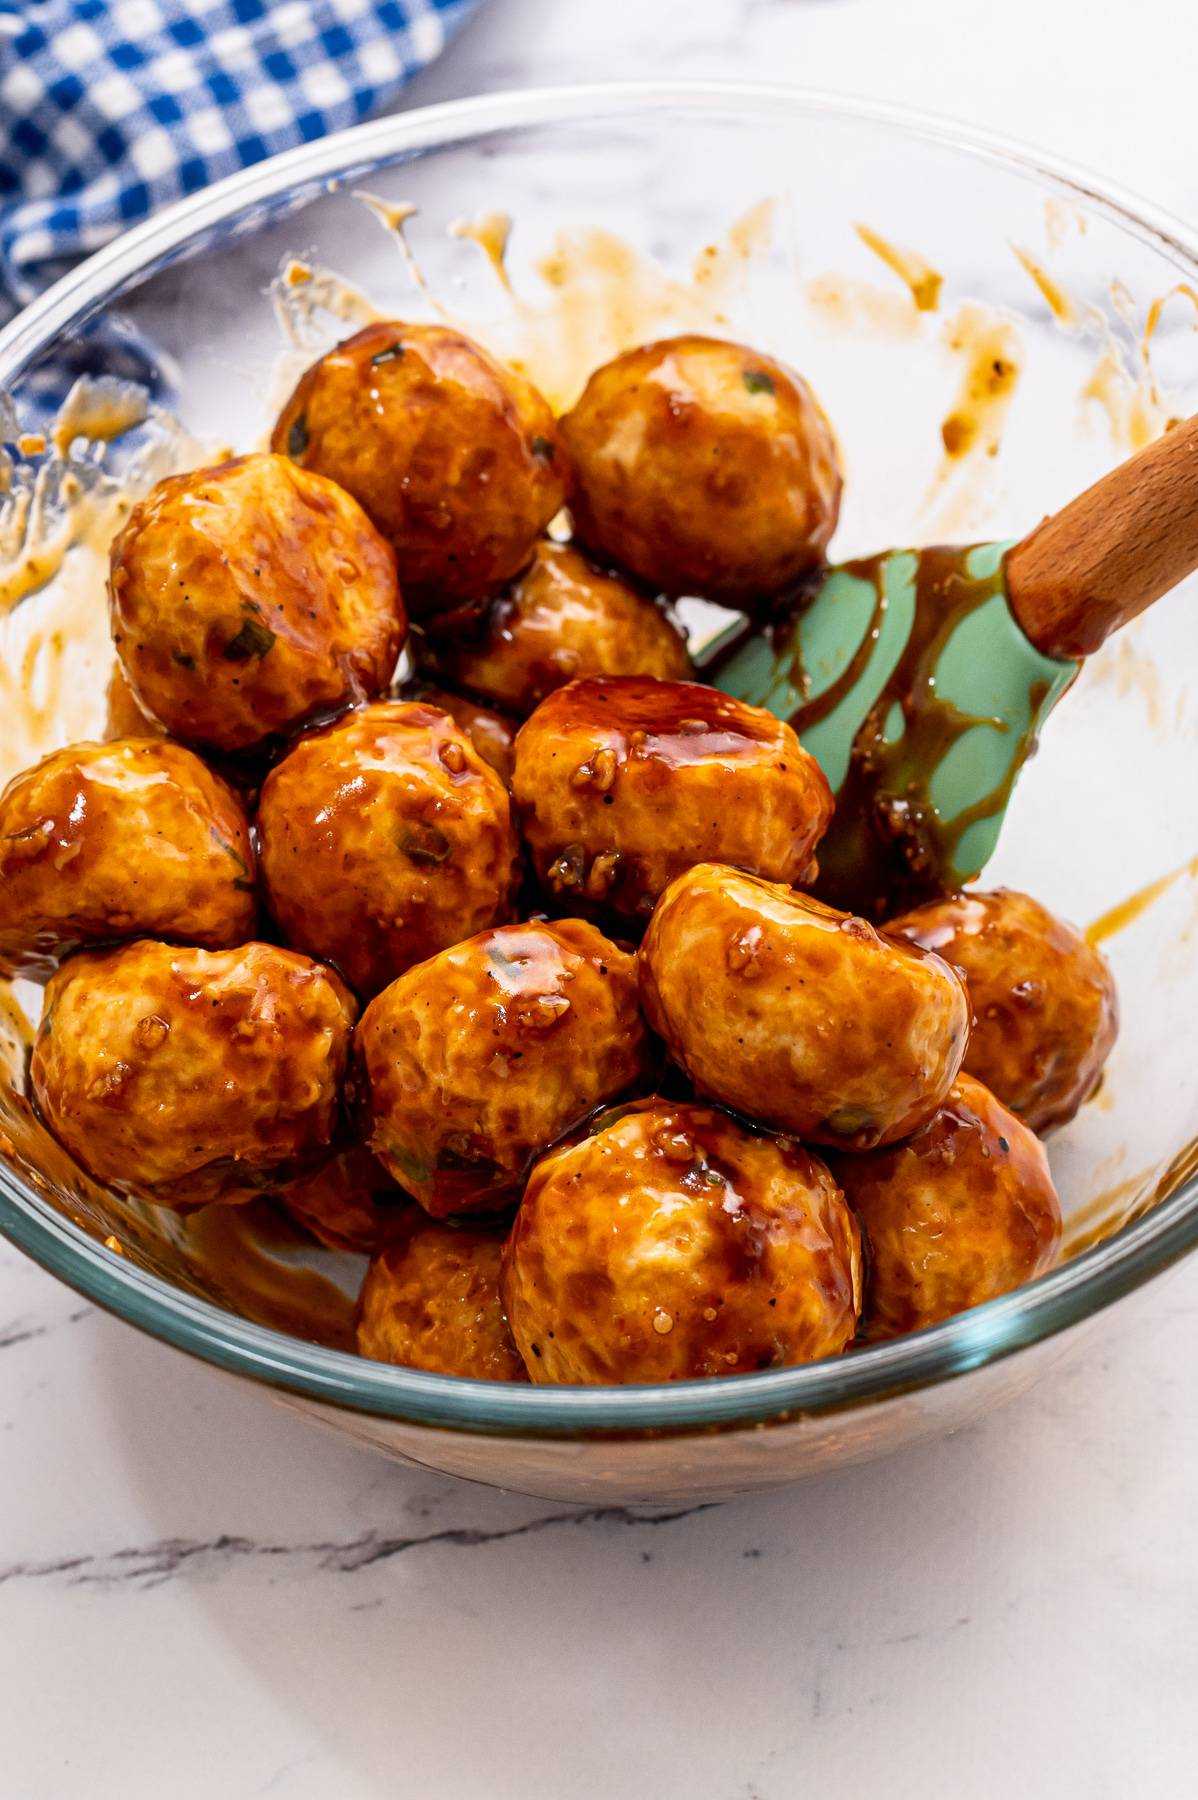 Asian meatballs being tossed in sweet sauce.